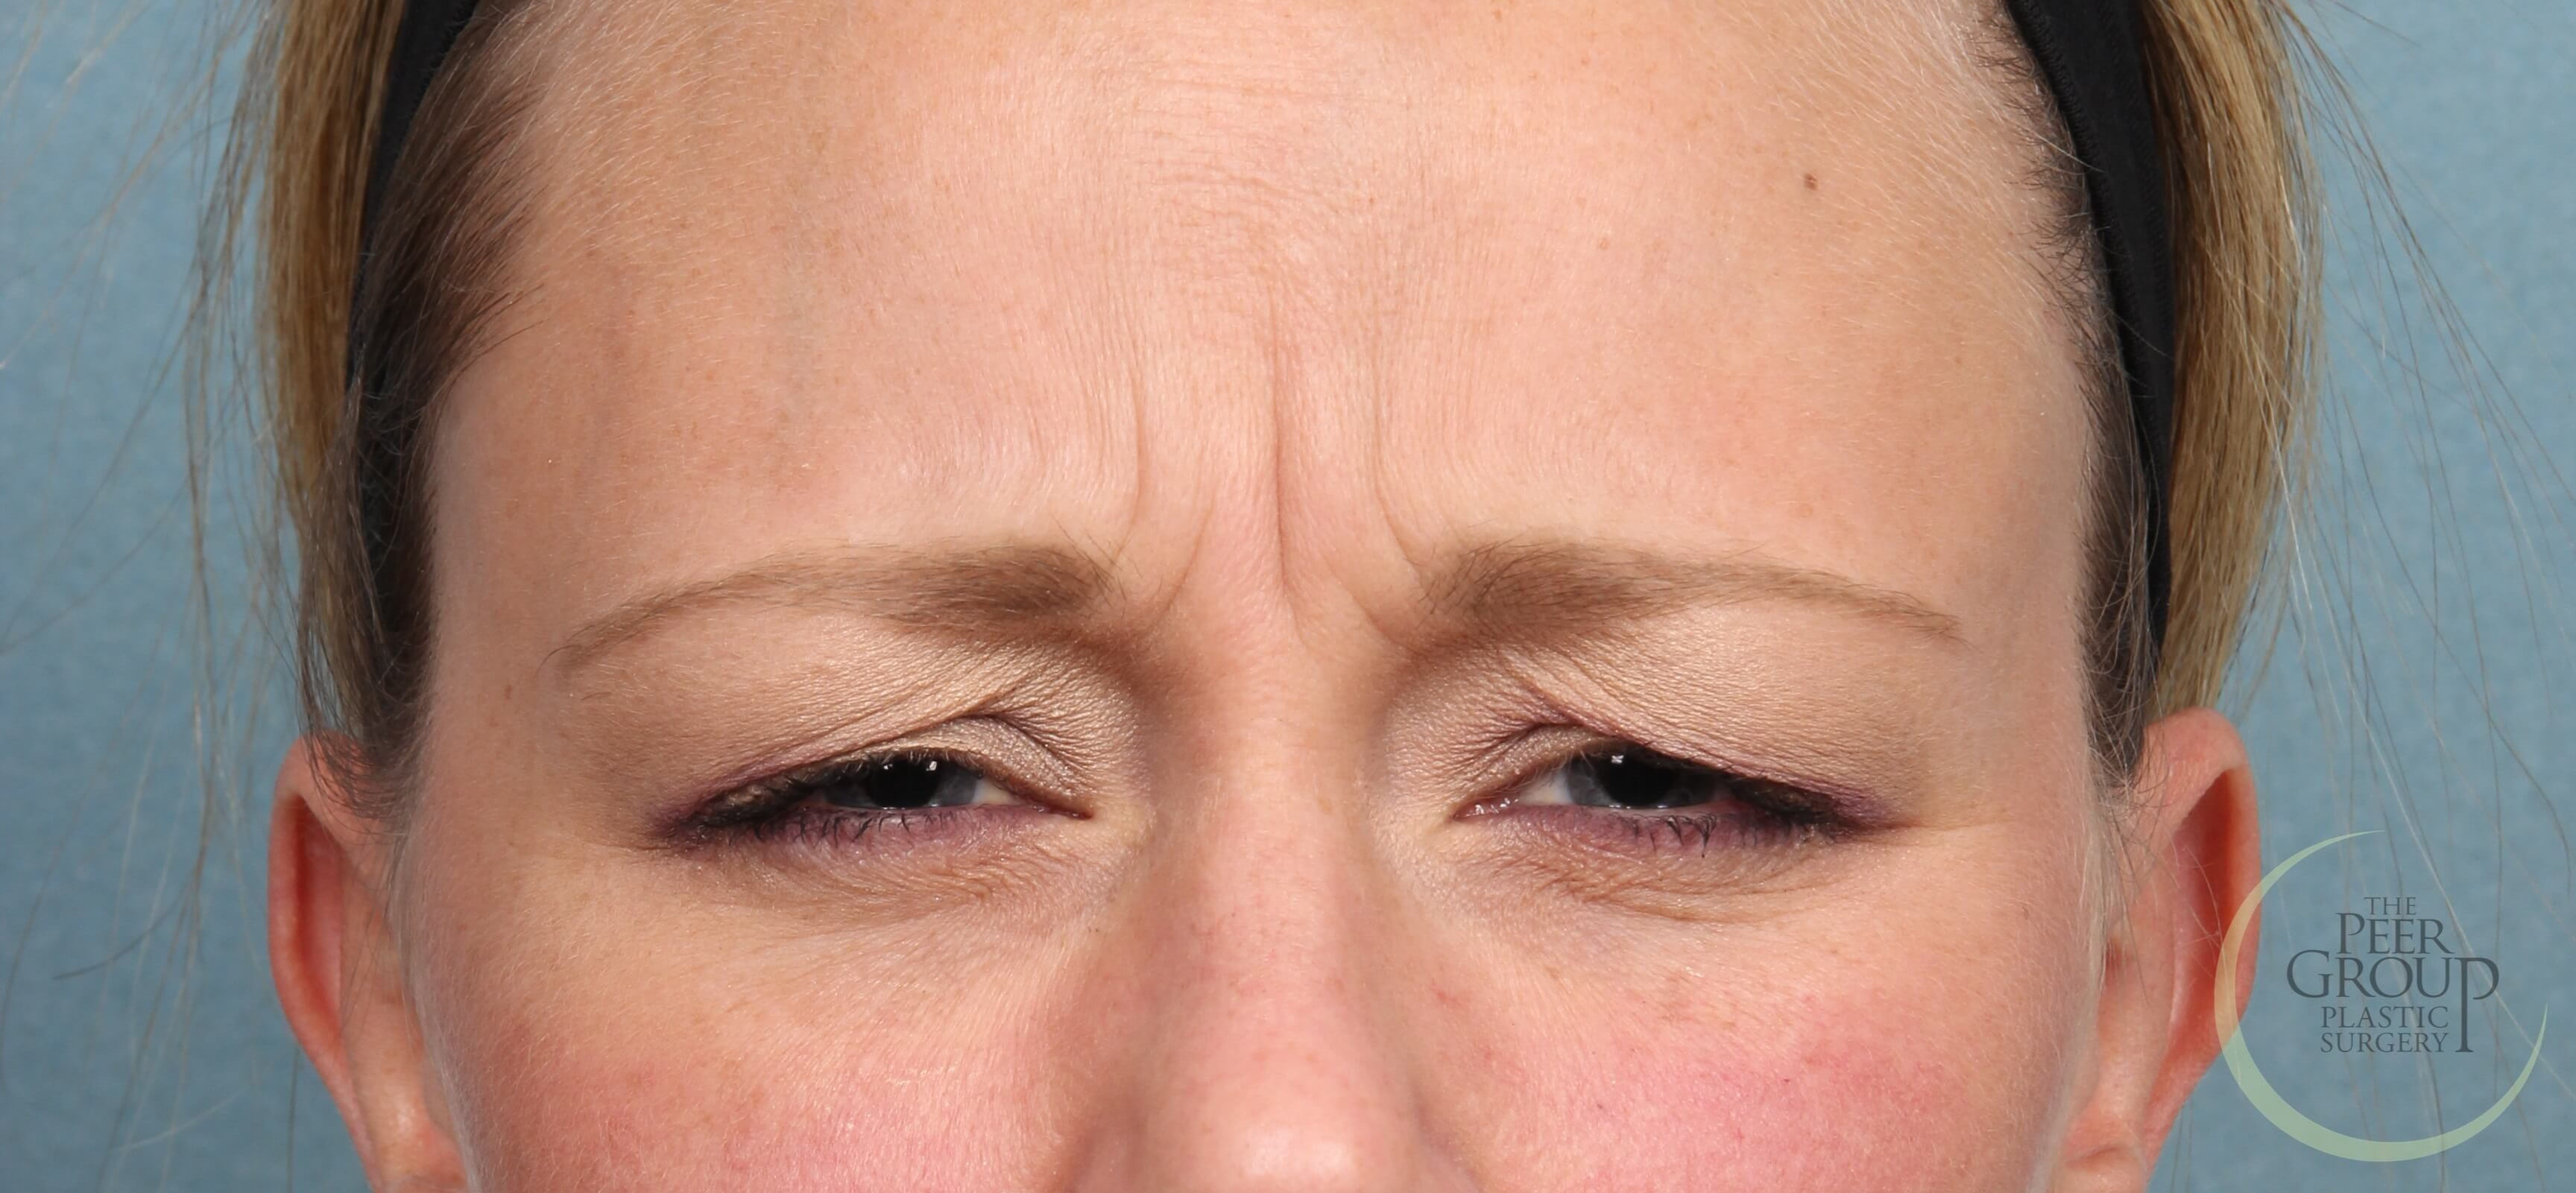 New Jersey Botox NJ Botox Before